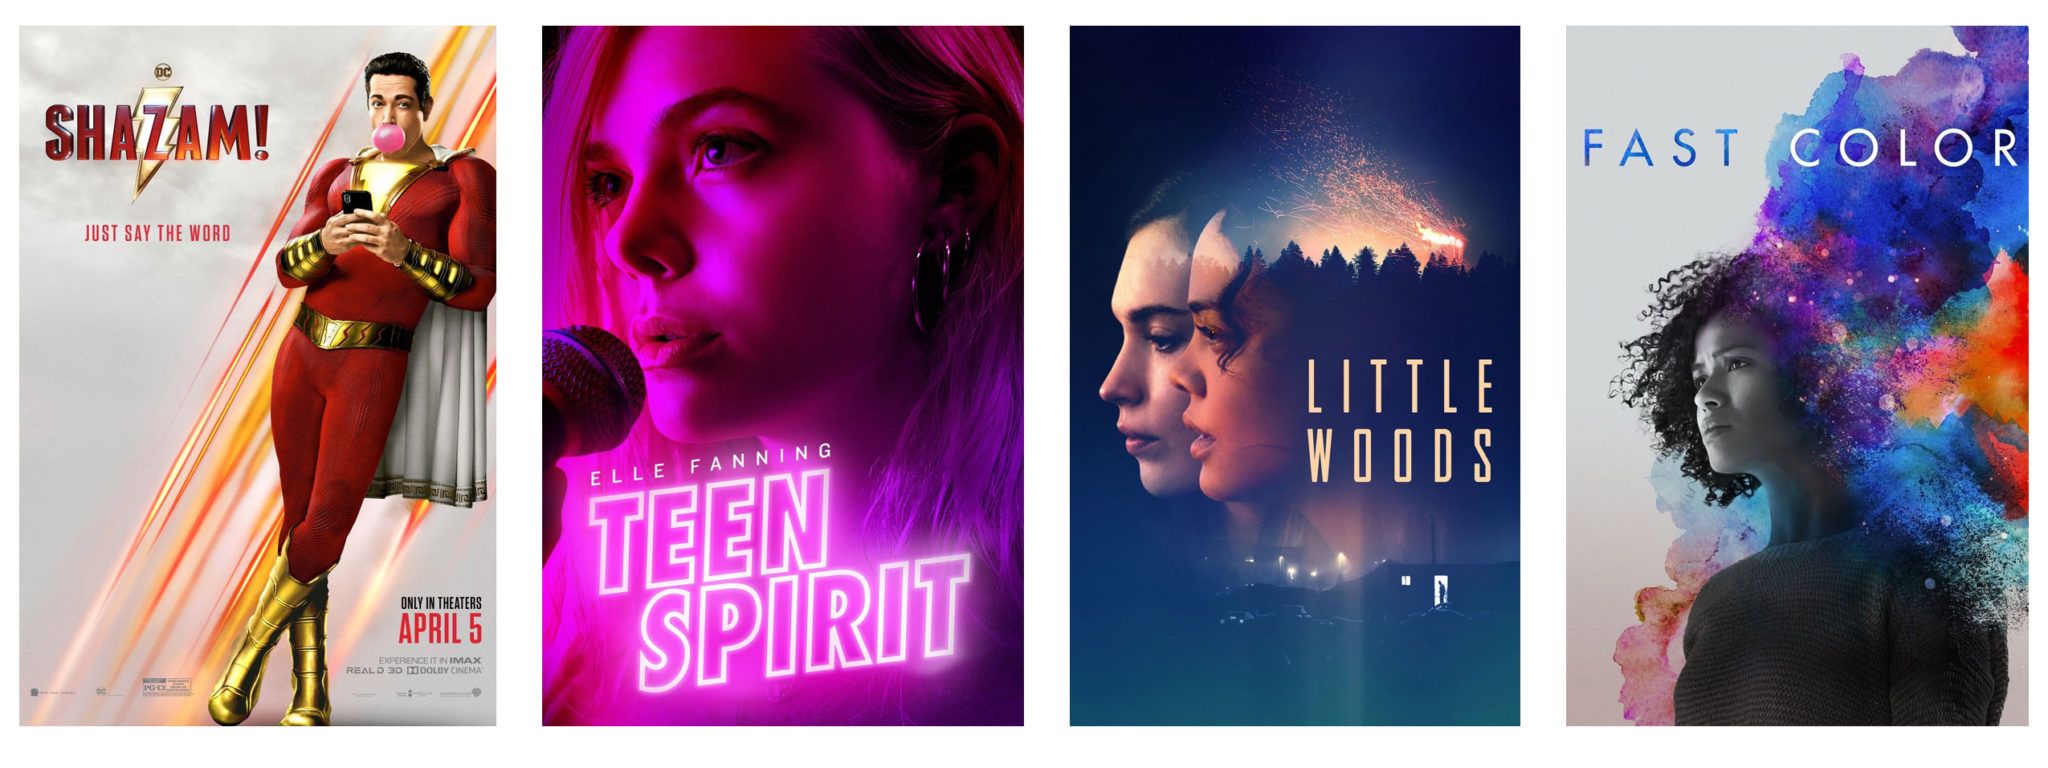 featured new releases: shazam, teen spirit, little woods, fast color